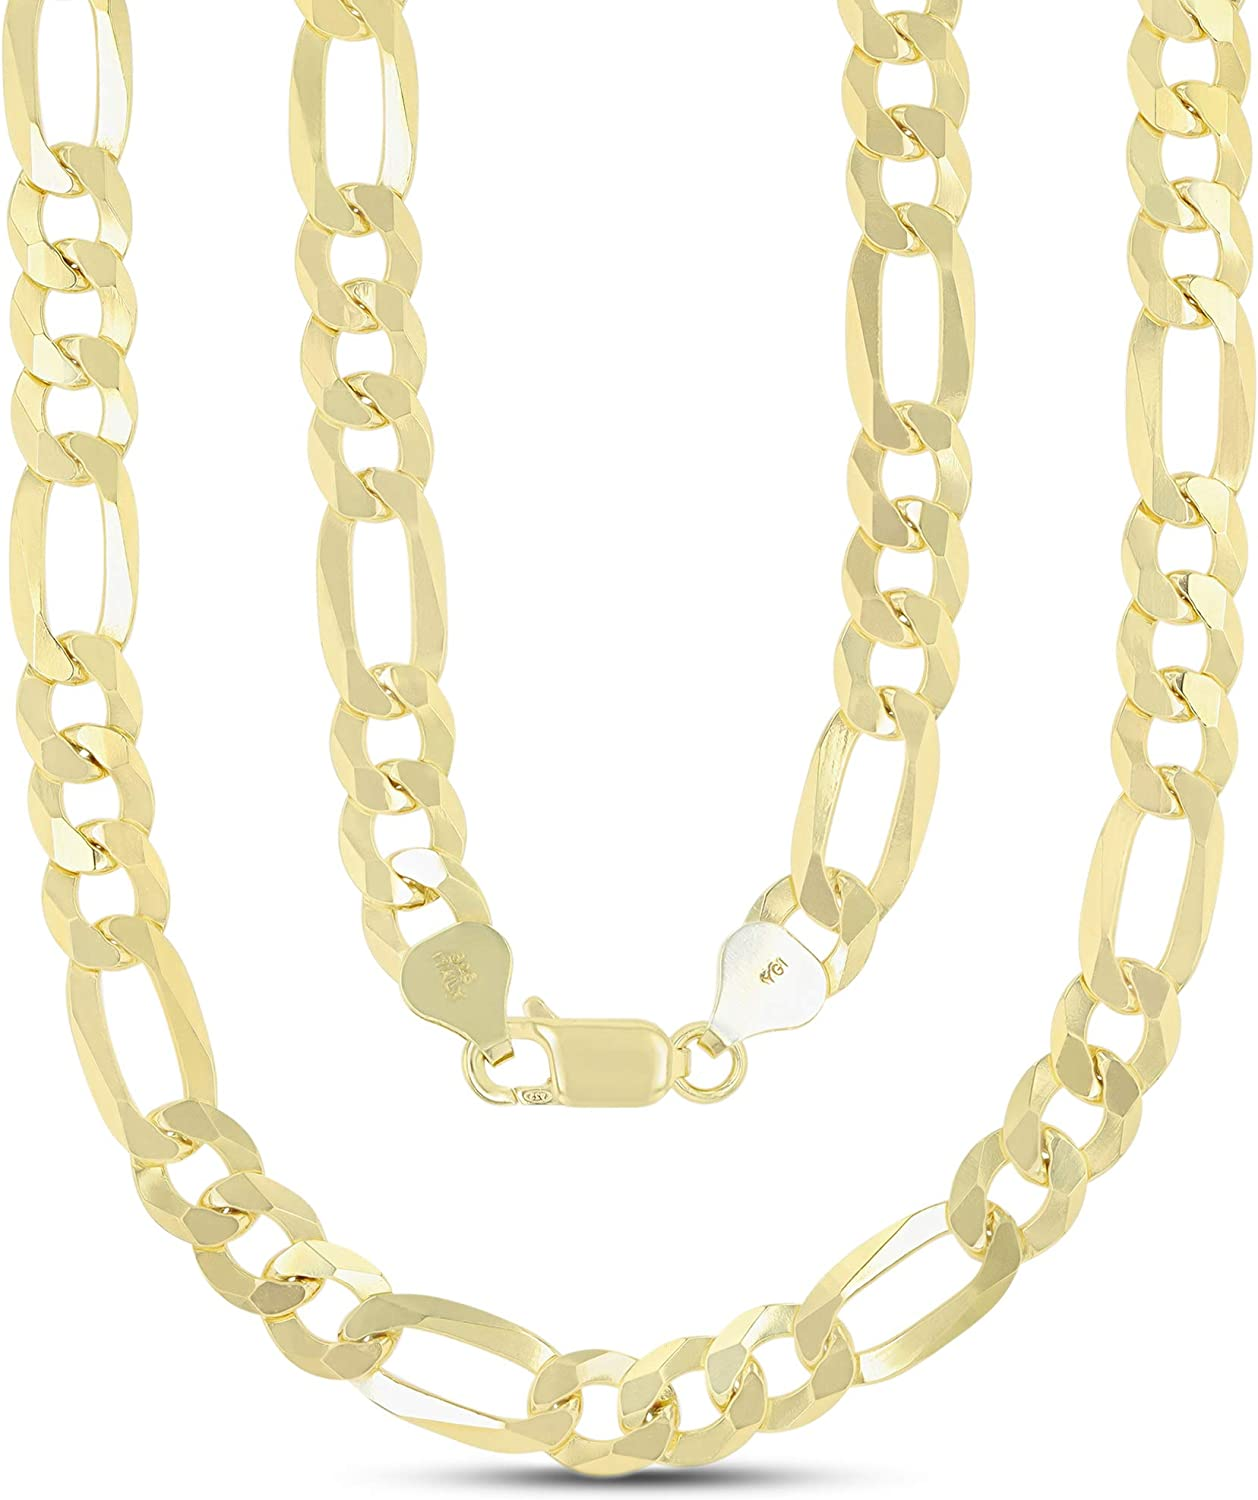 14K Kansas City Mall Gold or Rhodium Plated Silver Chain 1mm-13m Men Figaro New popularity For